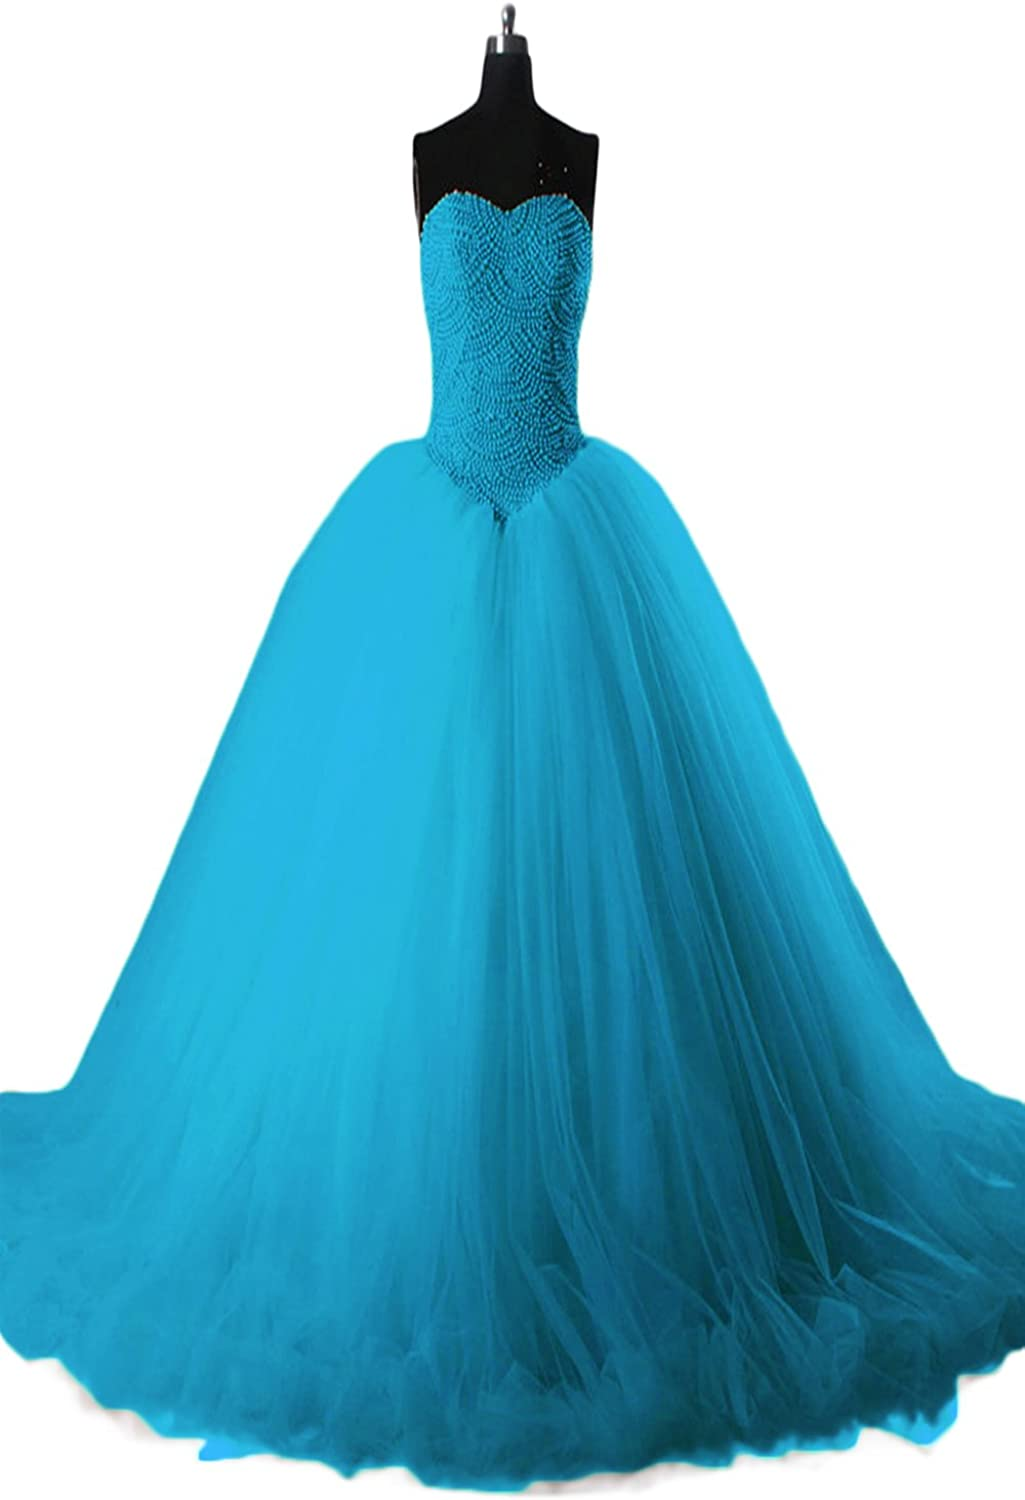 SDRESS Women's Pearls Strapless Sweetheart Laceup Ball Gown Quinceanera Dress